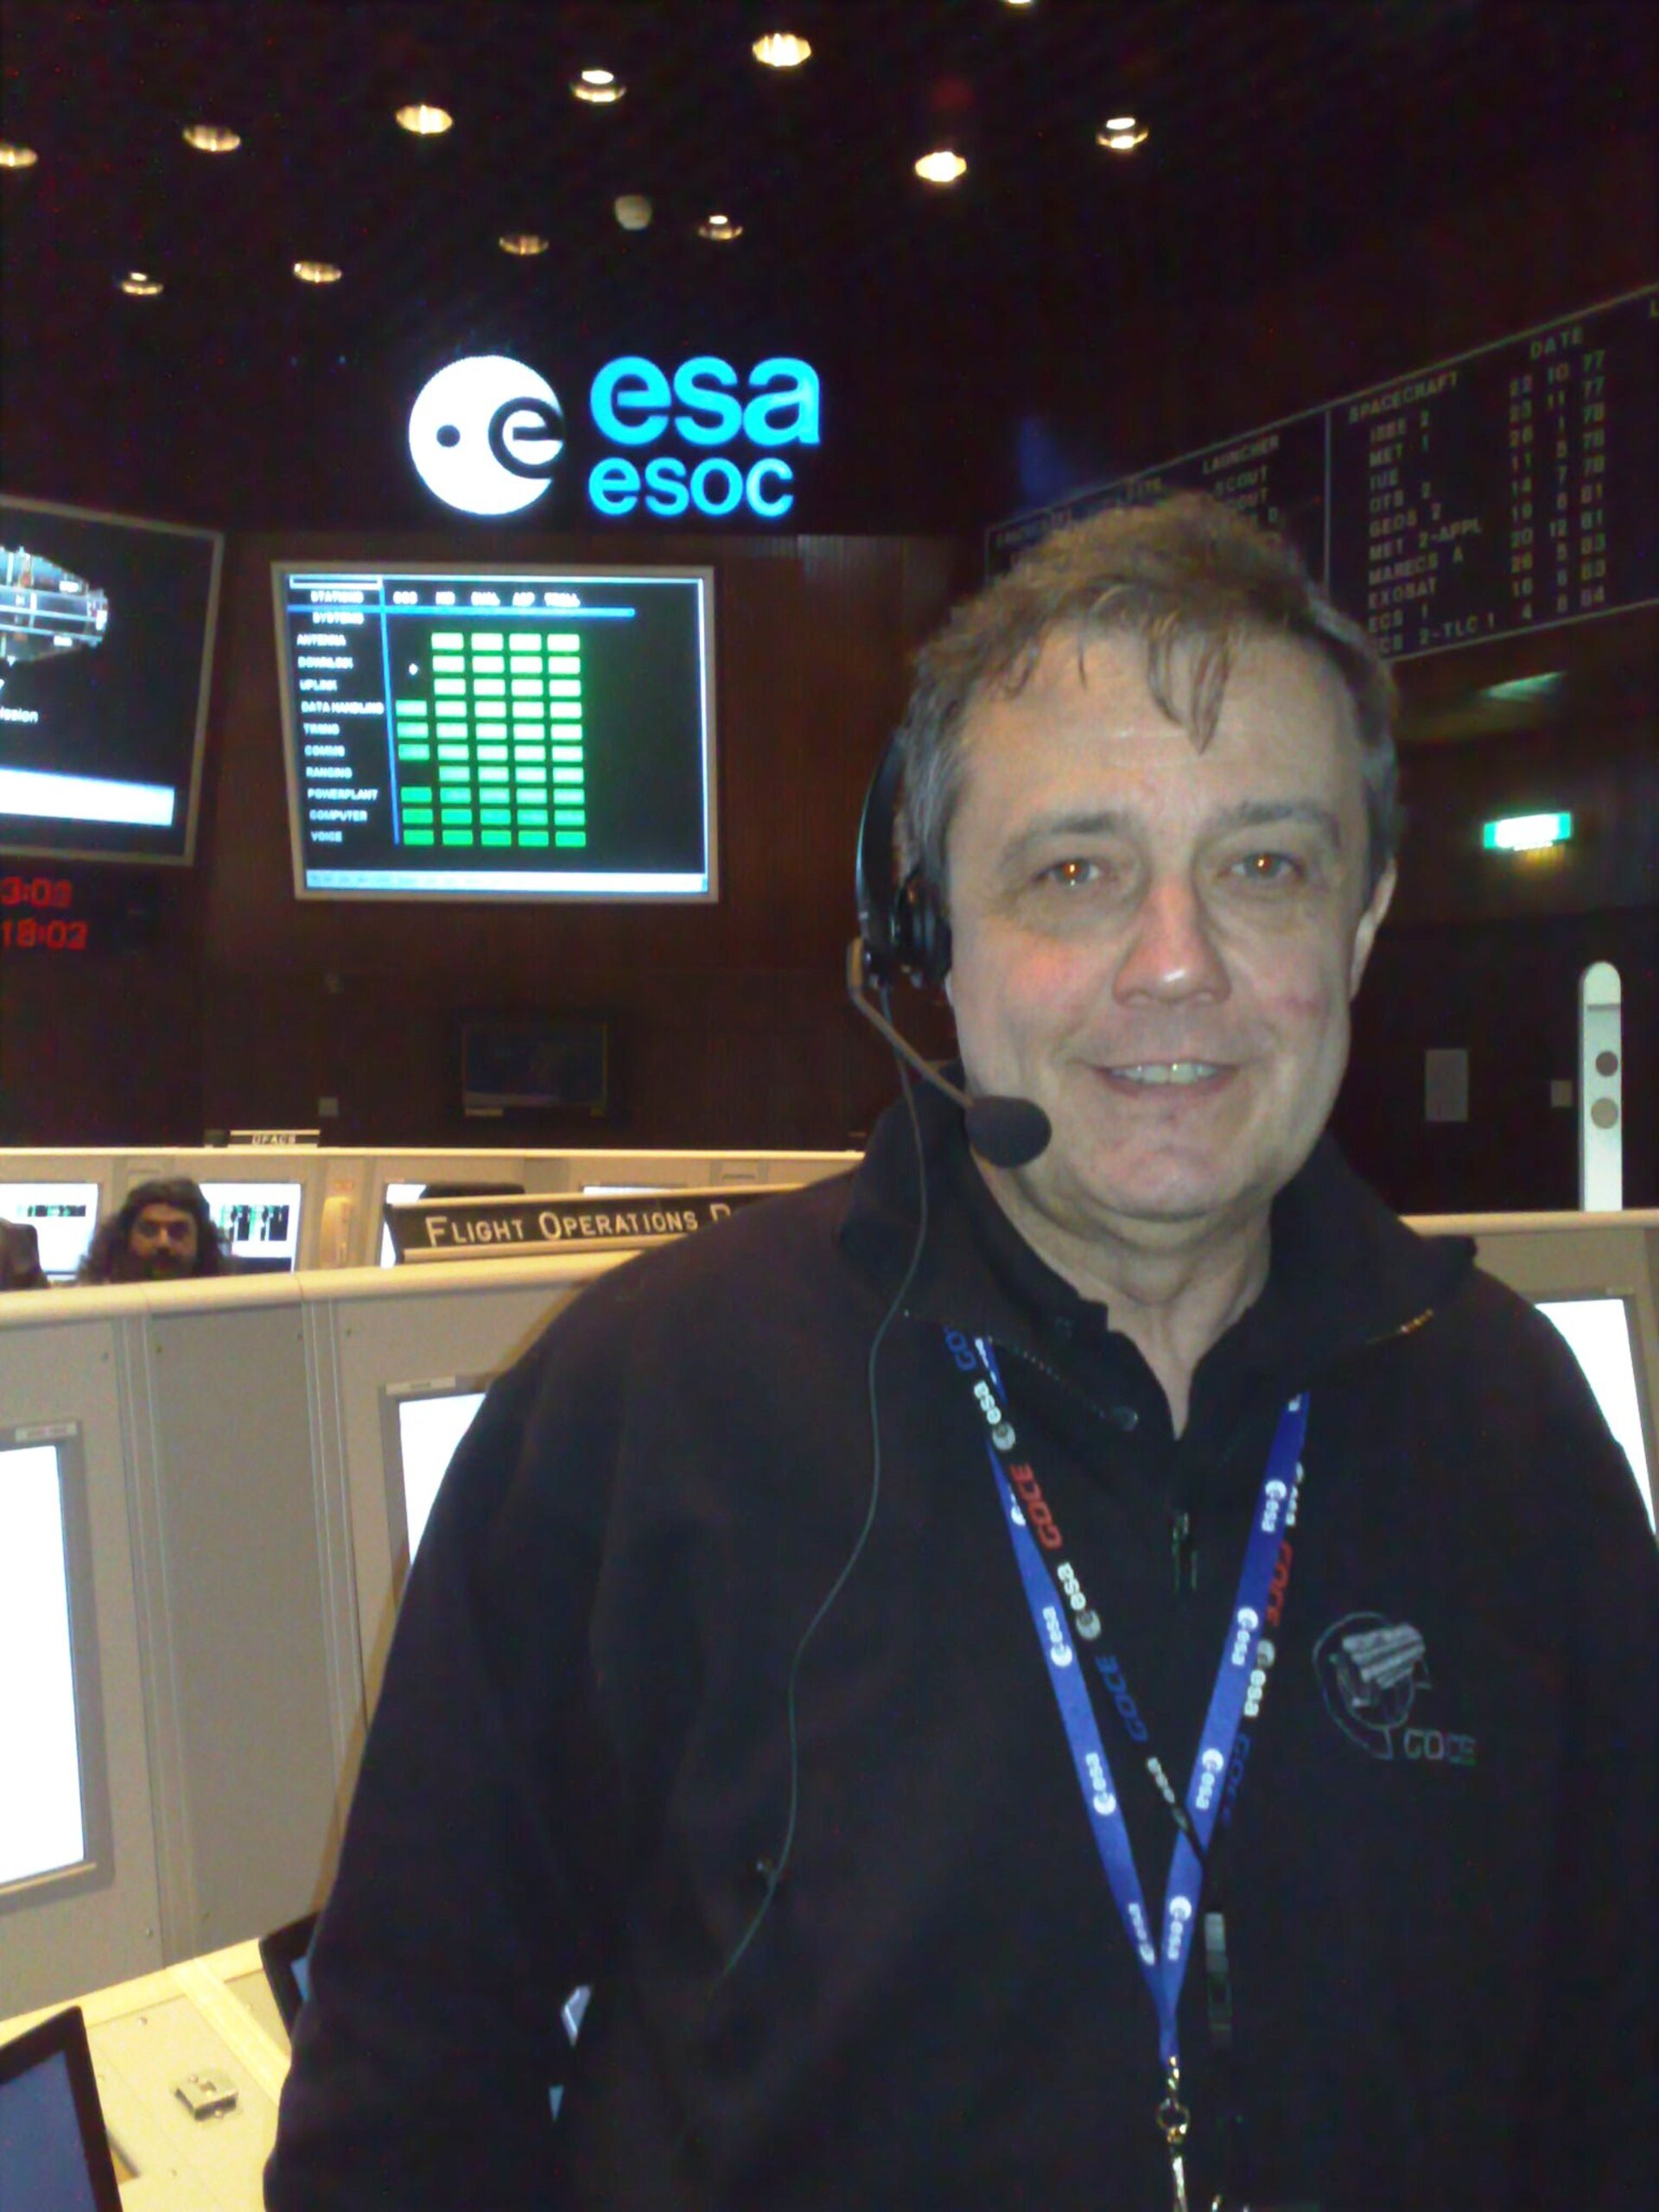 GOCE Flight Director P-P. Emanuelli on console